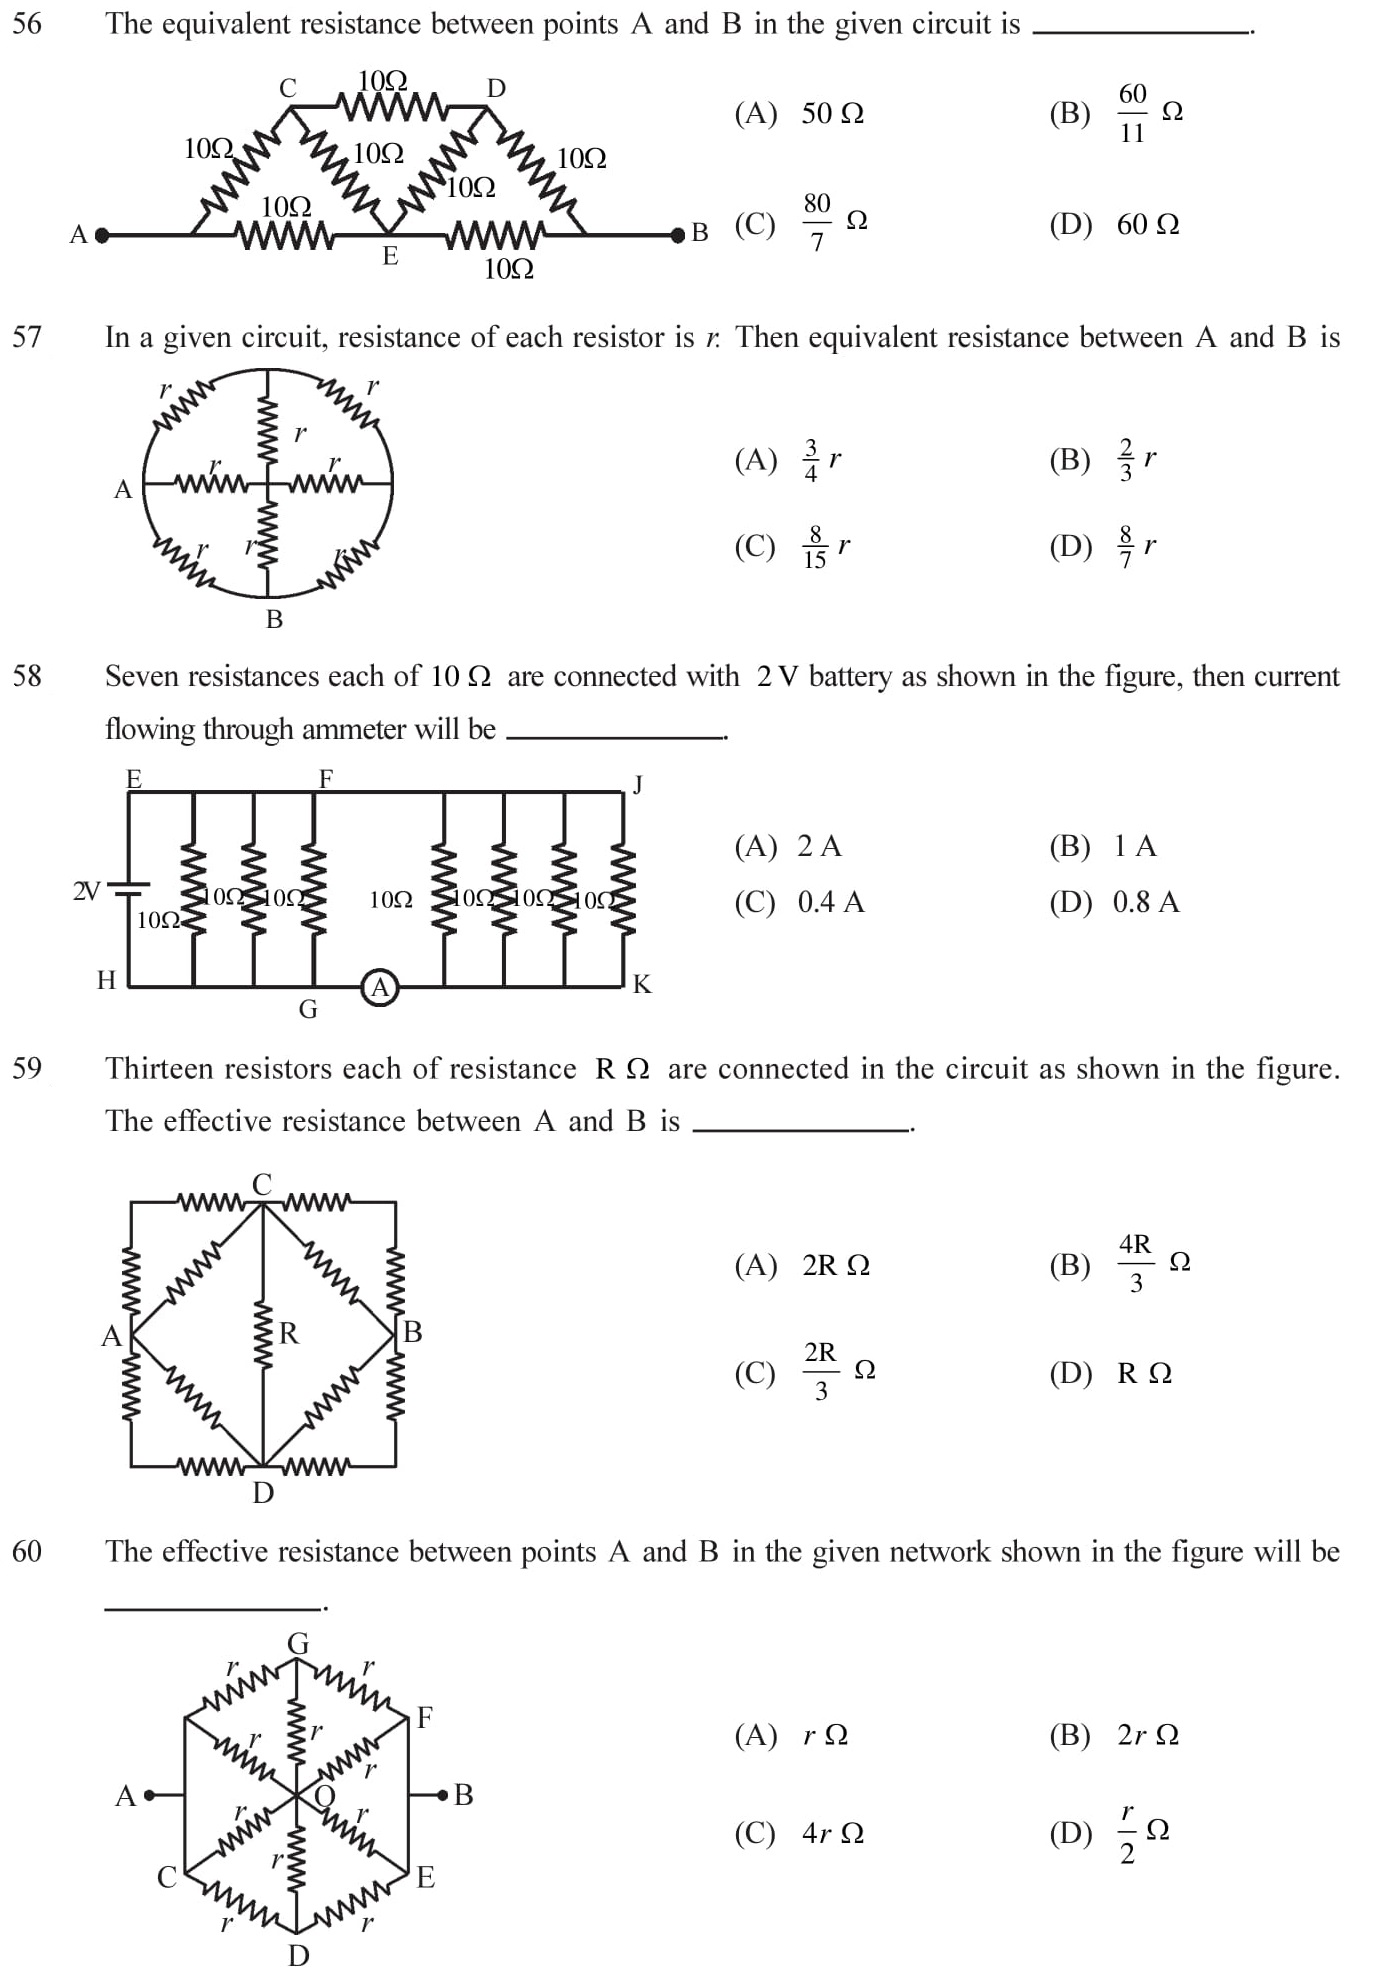 NEET-JEE-IIT-Questions-Current-Electricity-Topic-10